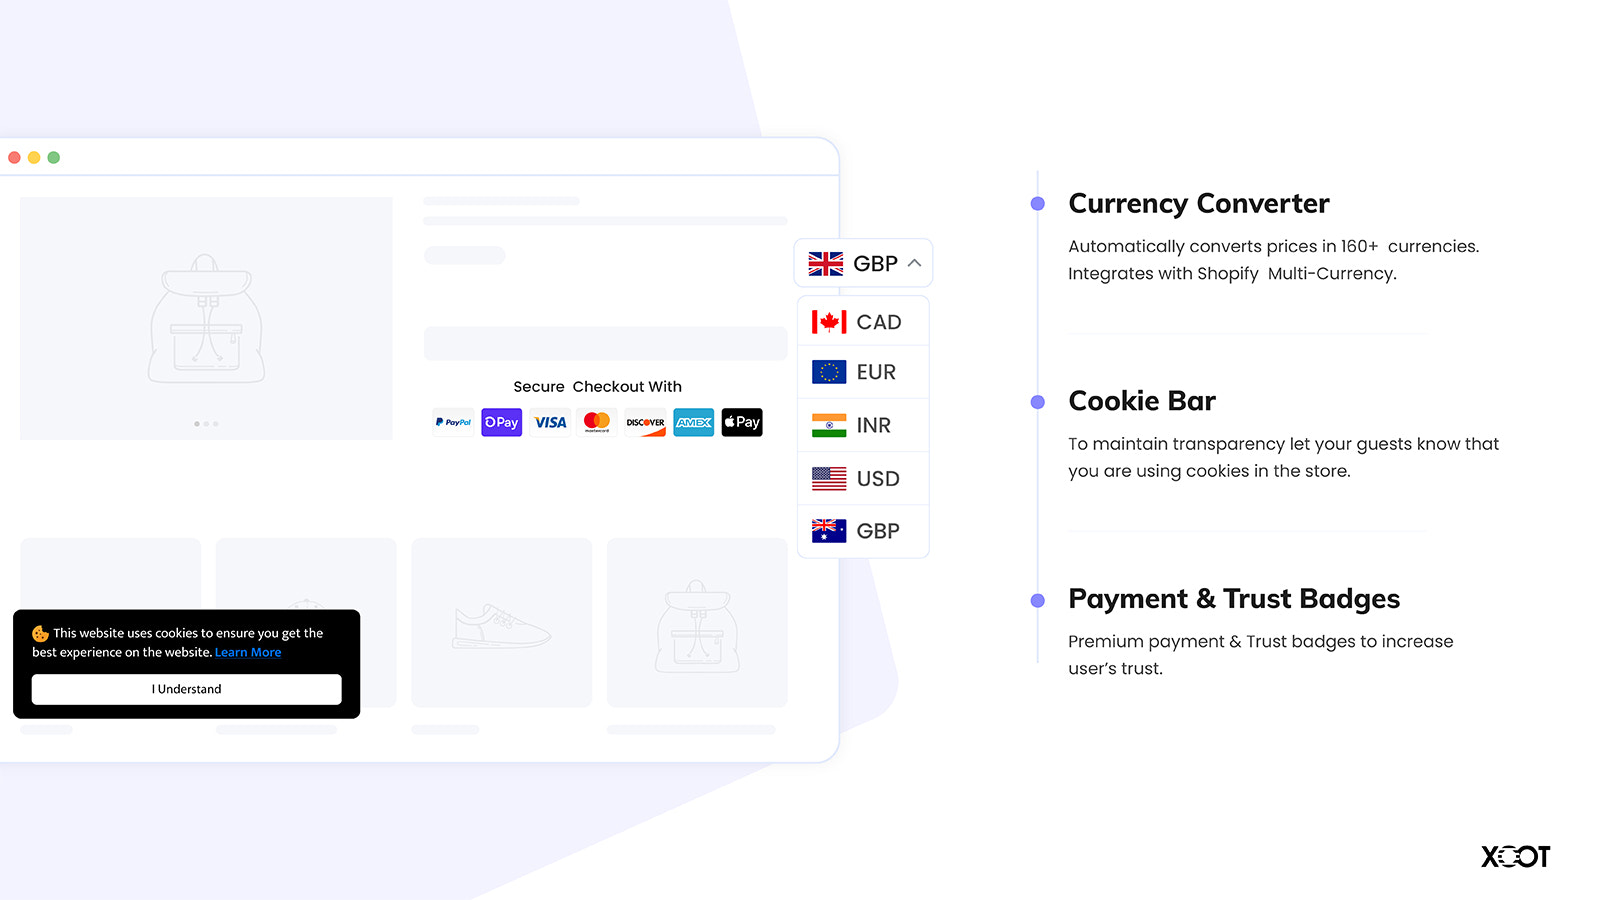 Currency Converter, Payment Badges & Cookie Bar